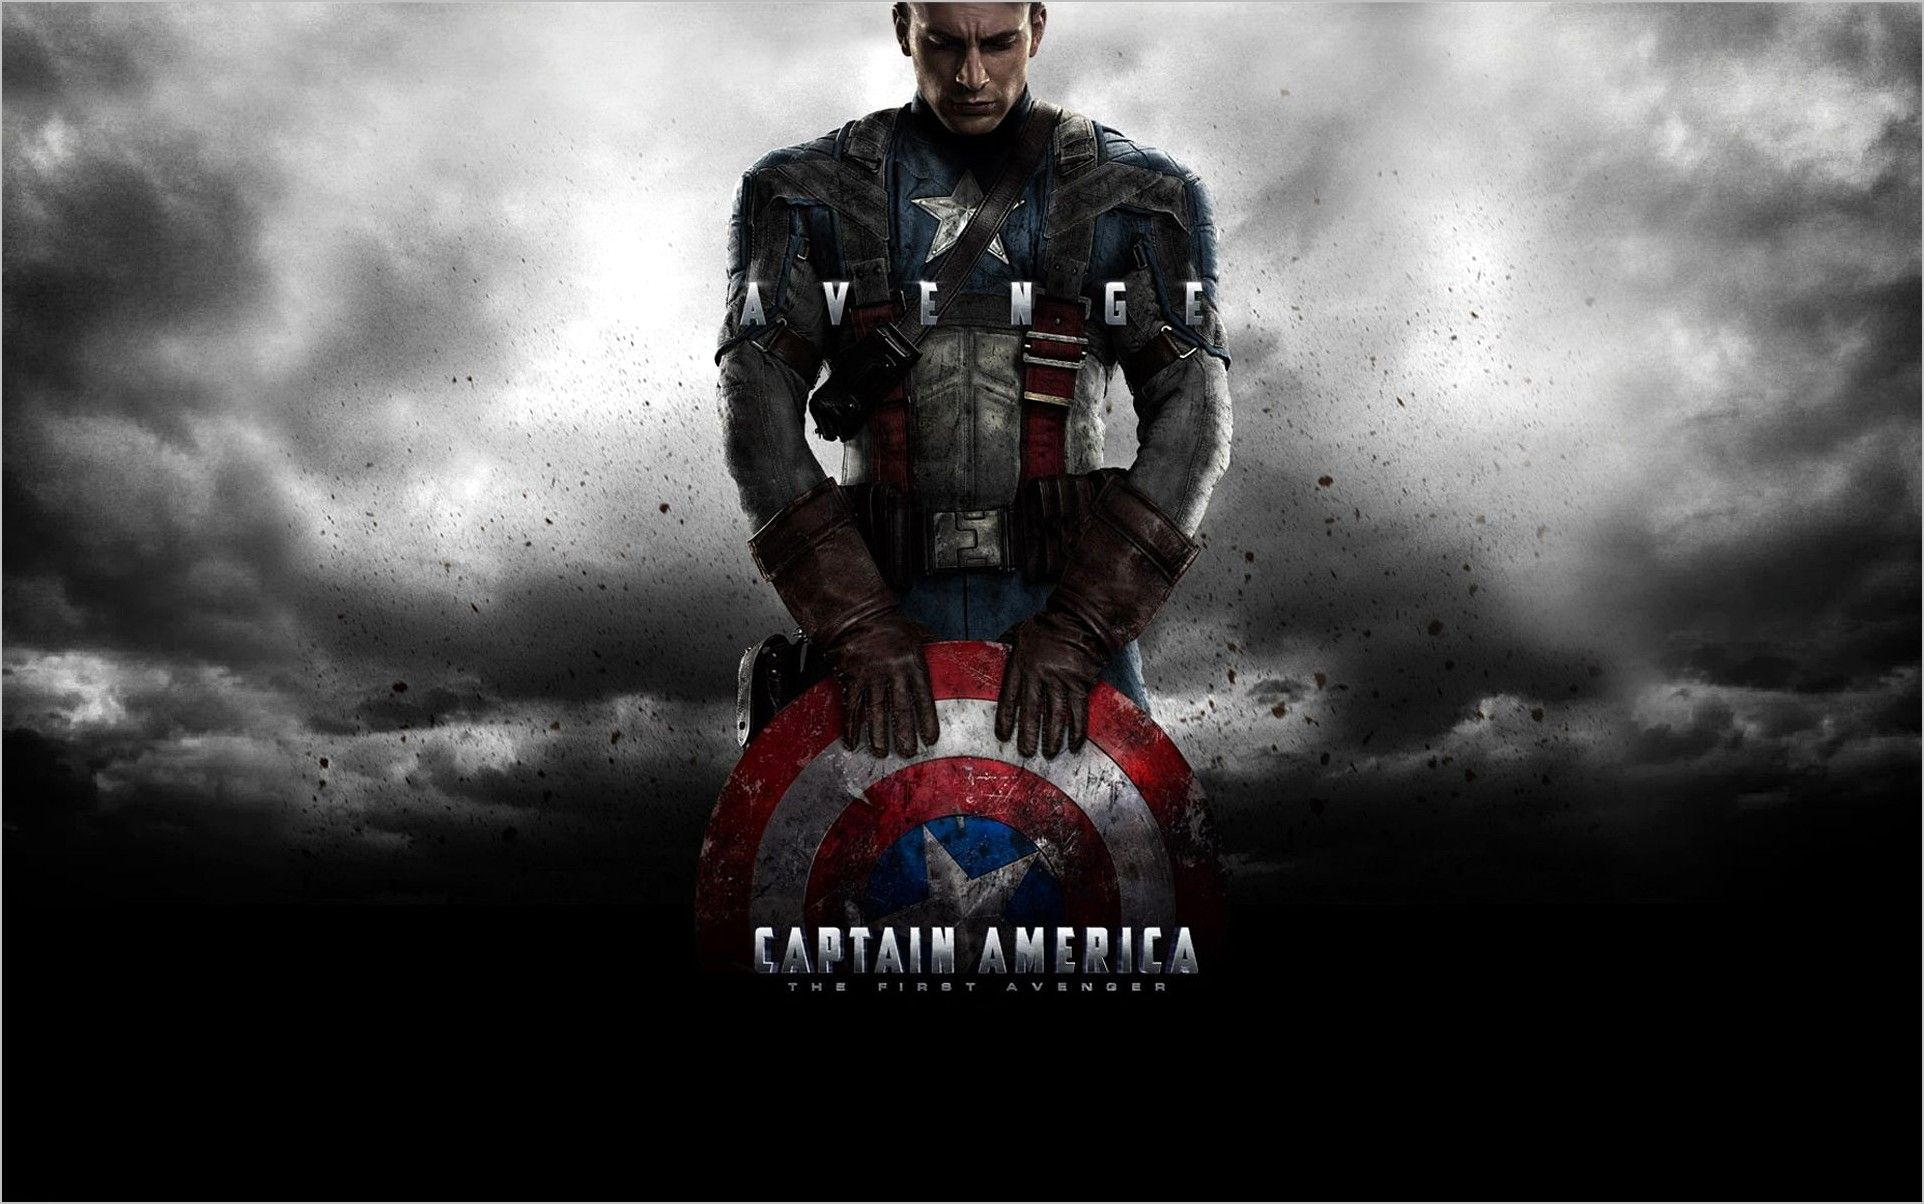 Captain America I Want You Wallpaper 4k In 2020 Captain America Wallpaper Captain America Movie Wallpapers